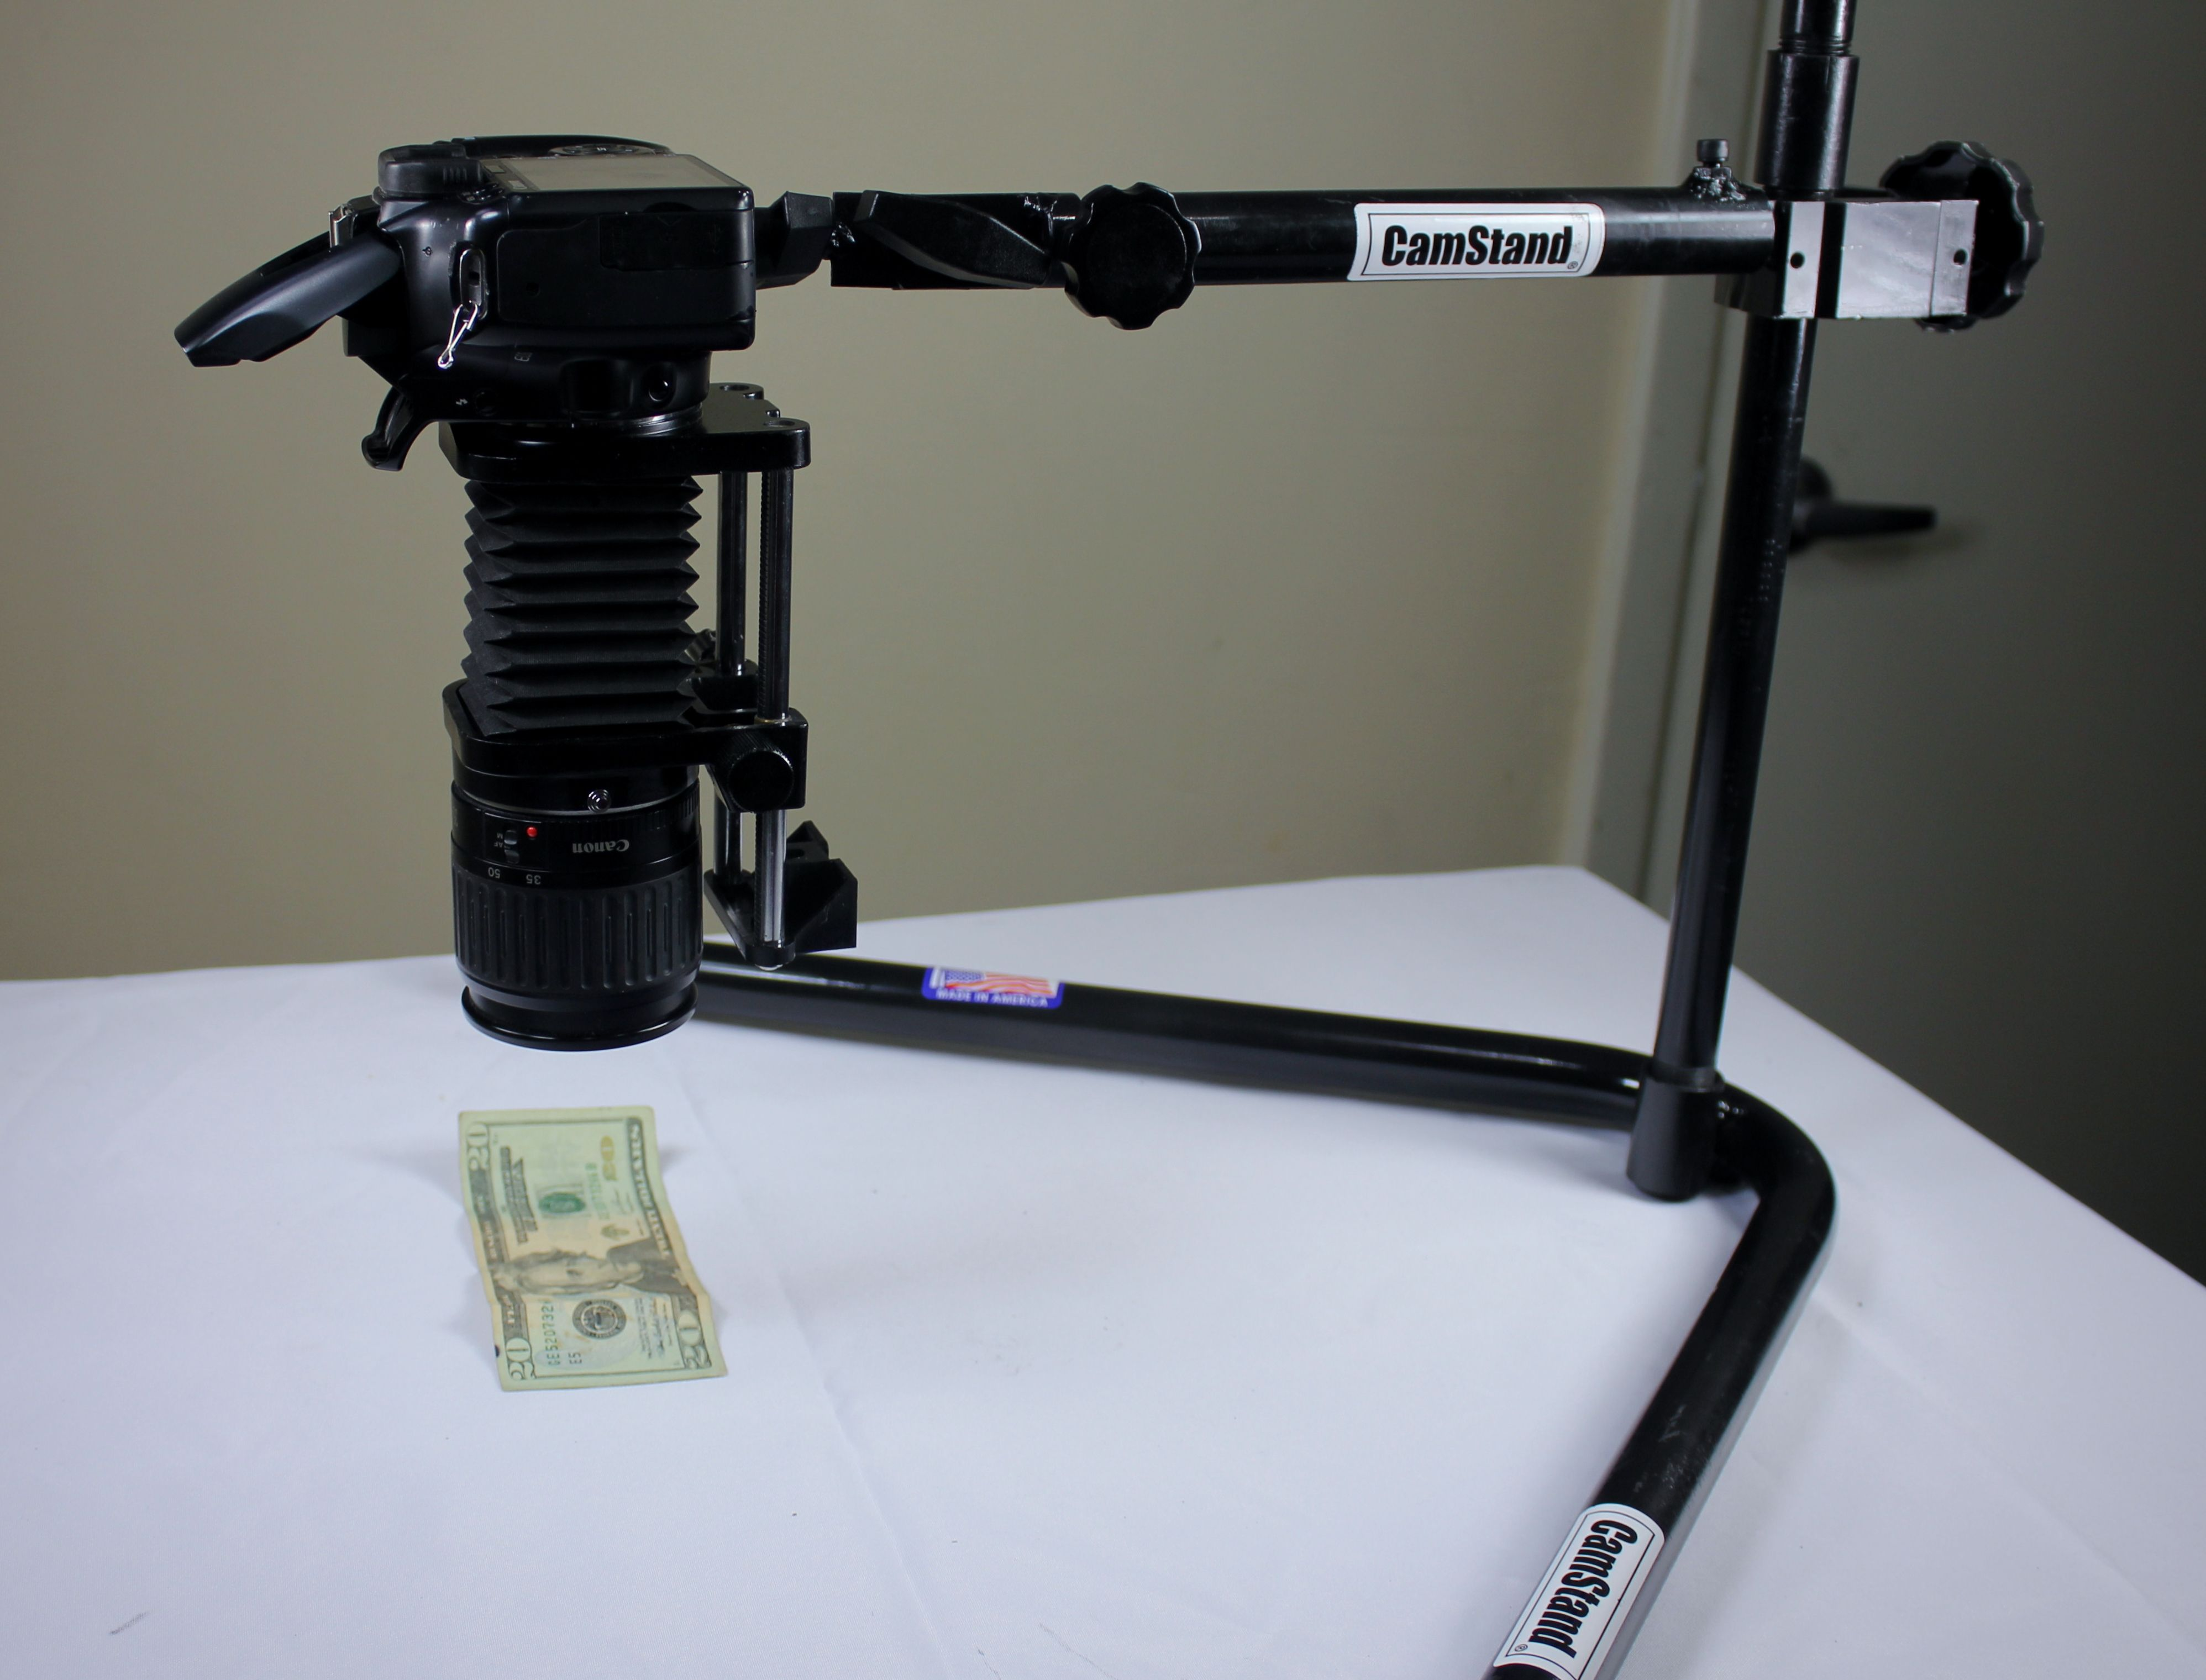 Setup Using The Camstand 5 Hd Desktop Camera Stand This Is A Similar That Fbi Cia Doj And Homeland Security Uses For Doentation Of